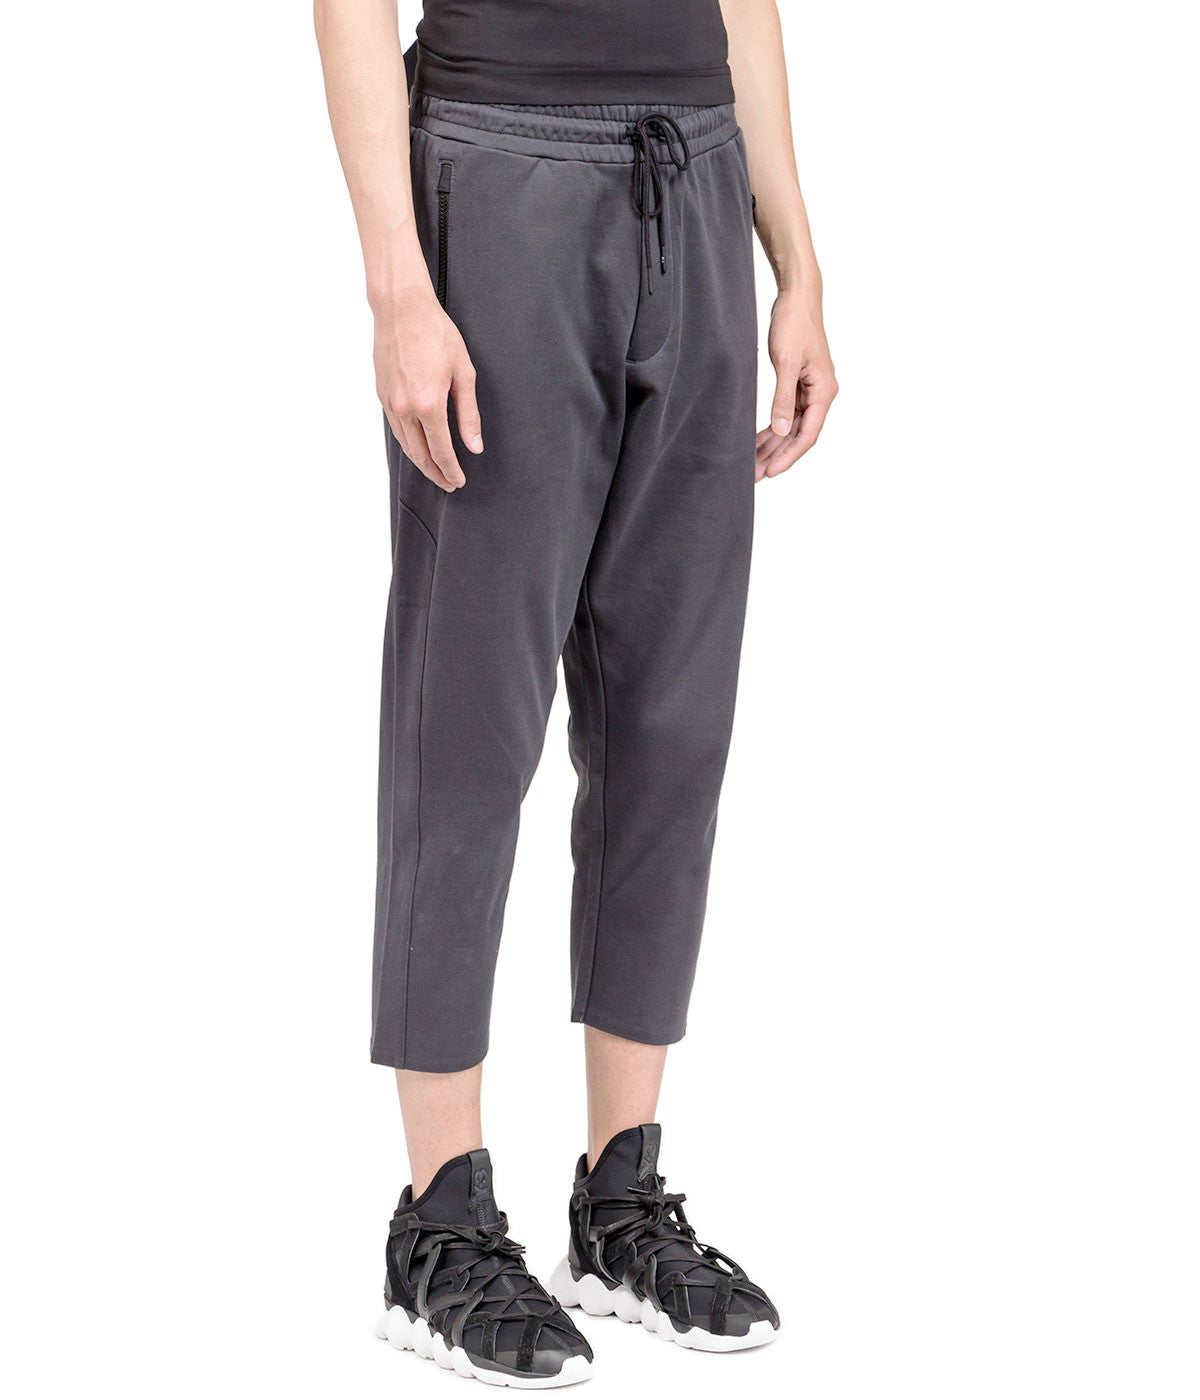 Carbon Black 3S Sweatpants